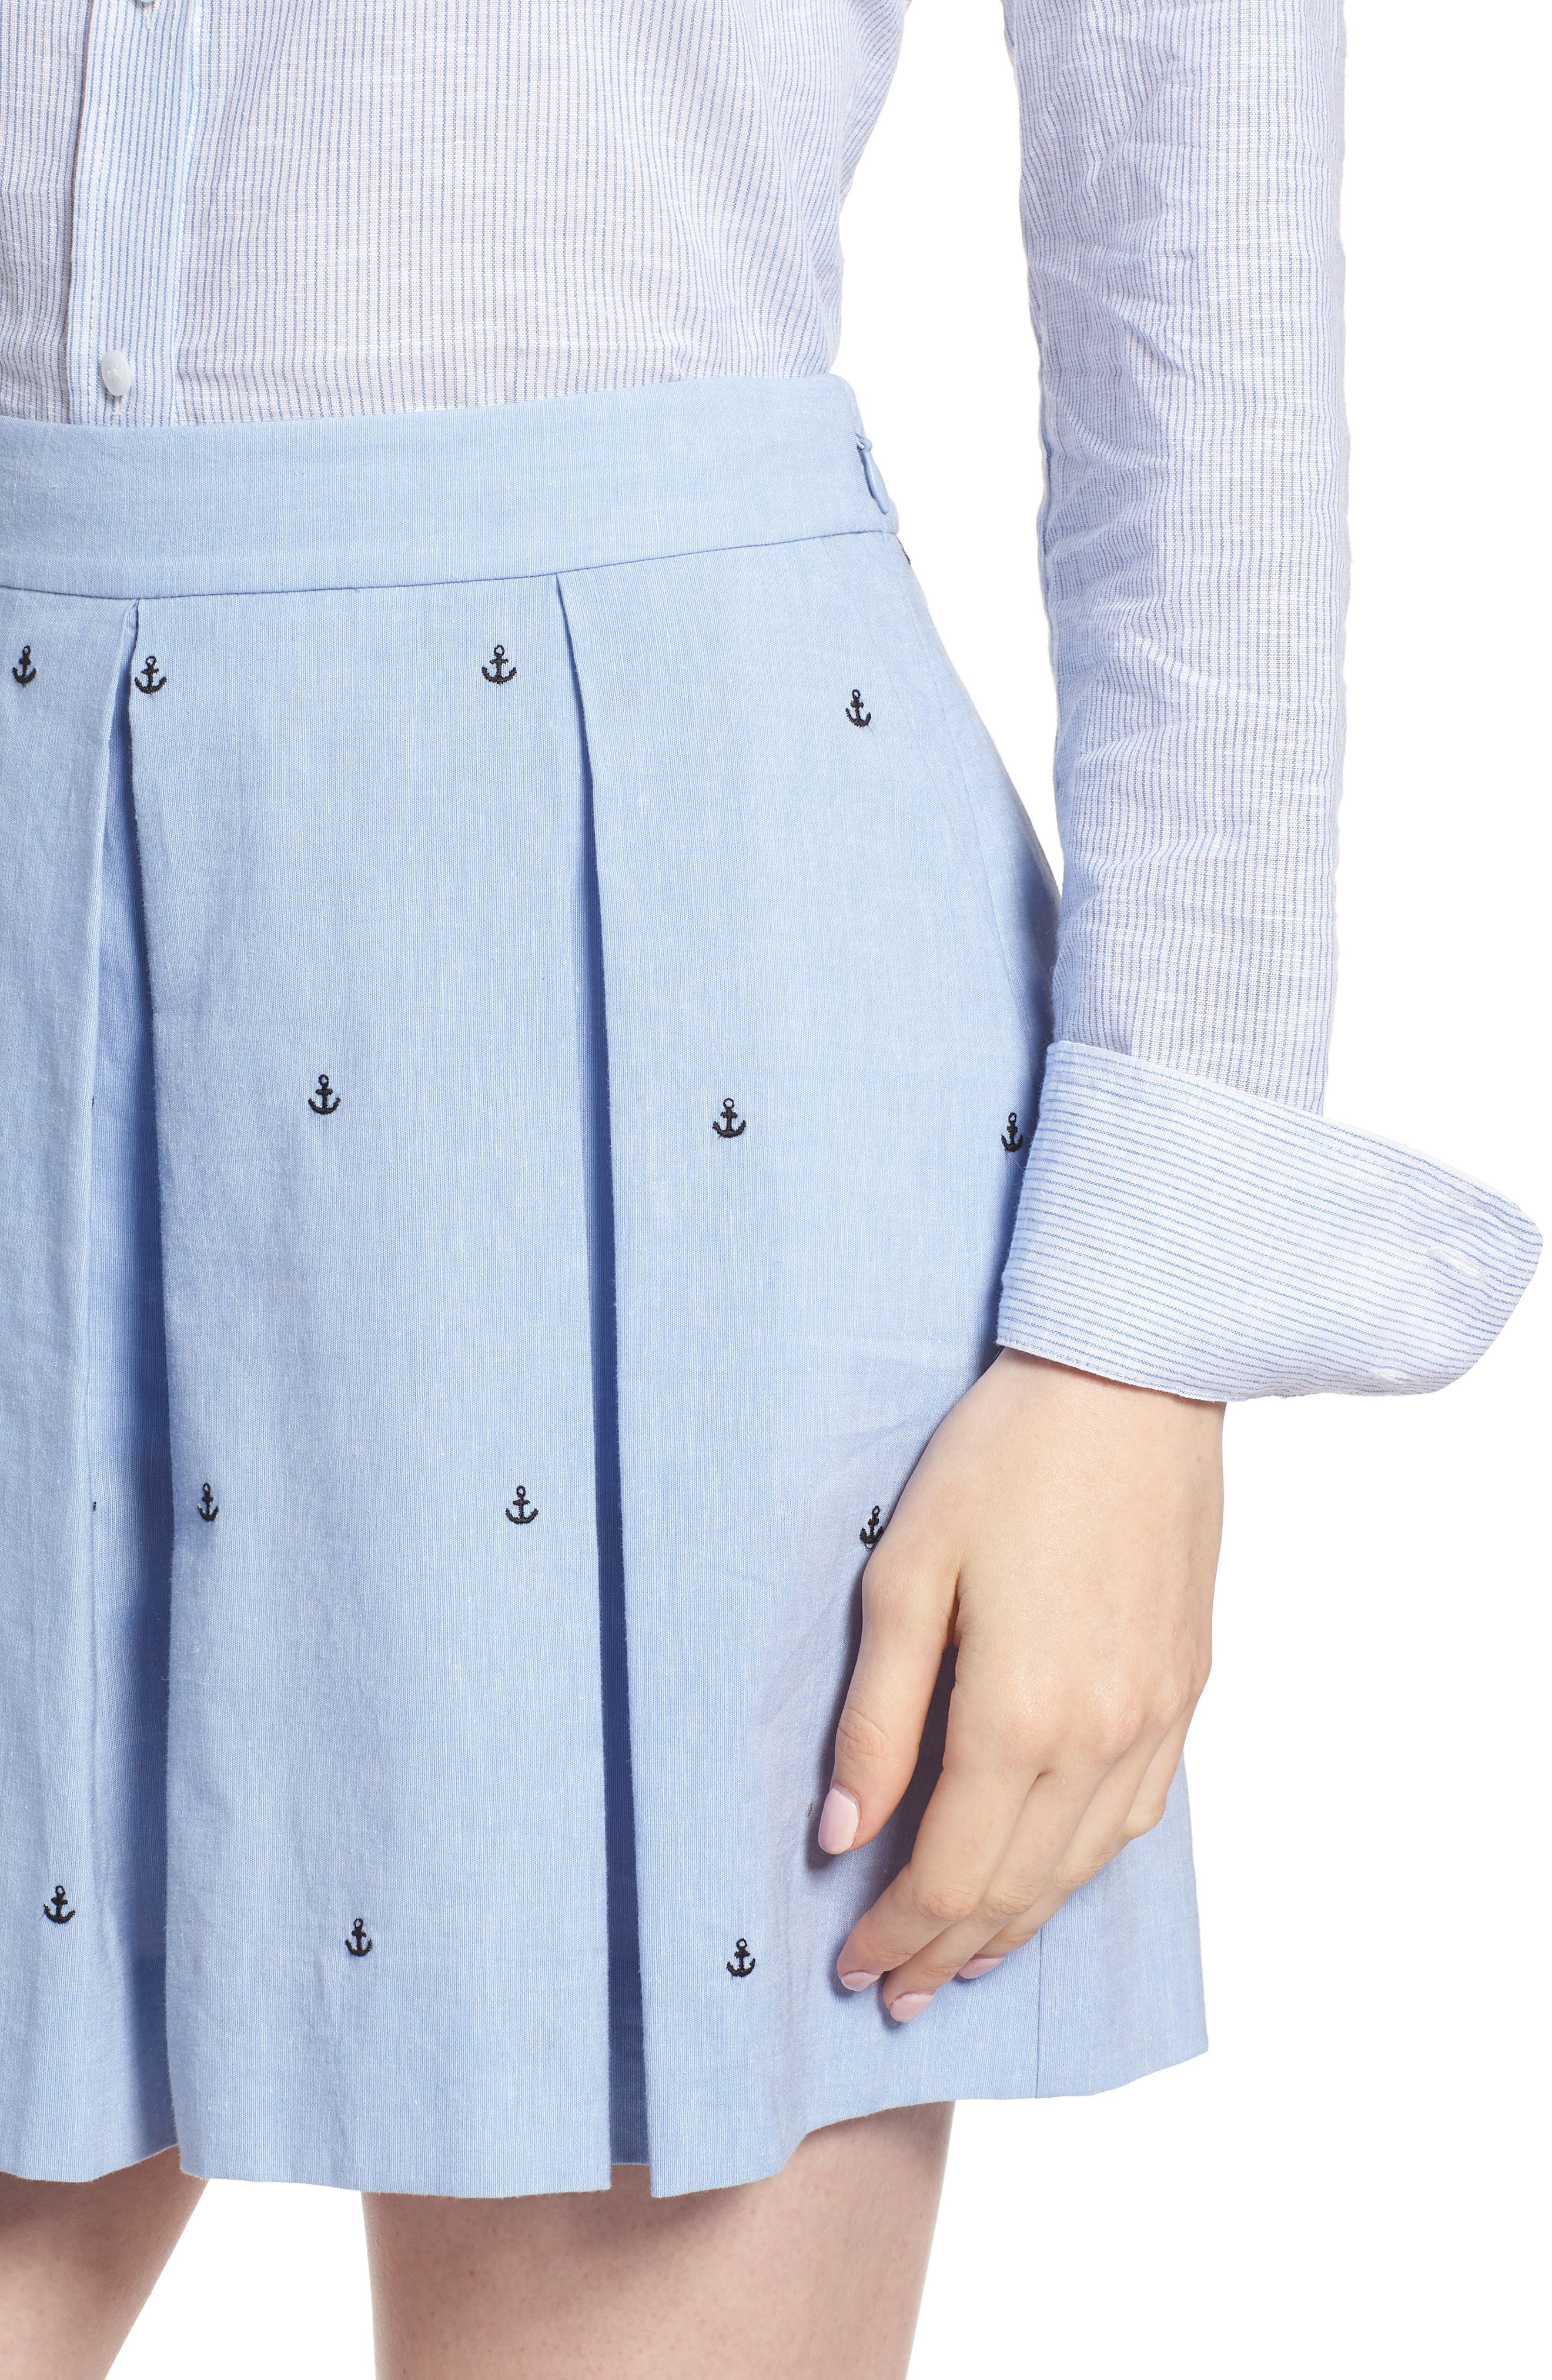 Anchor Embroidery Pleated Cotton Shorts,                             Alternate thumbnail 4, color,                             Chambray Anchor Print